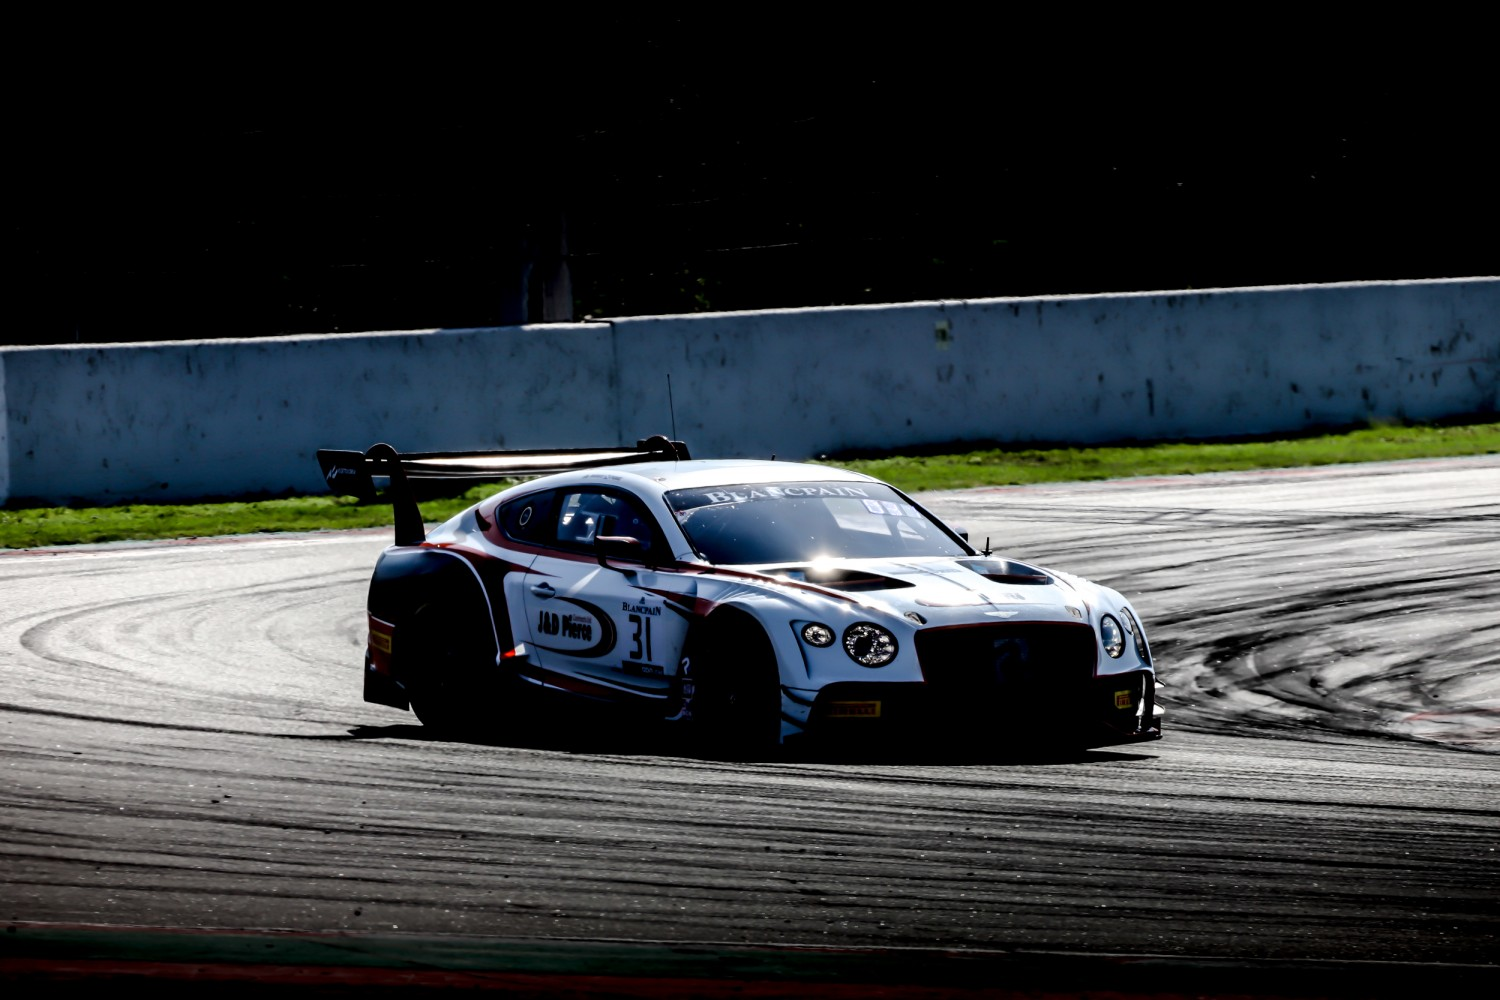 #31 Team Parker Racing GBR Bentley Continental GT3 Derek Pierce GBR - - Seb Morris GBR Pro-Am Cup, Pre-Qualifying  | SRO / Patrick Hecq Photography